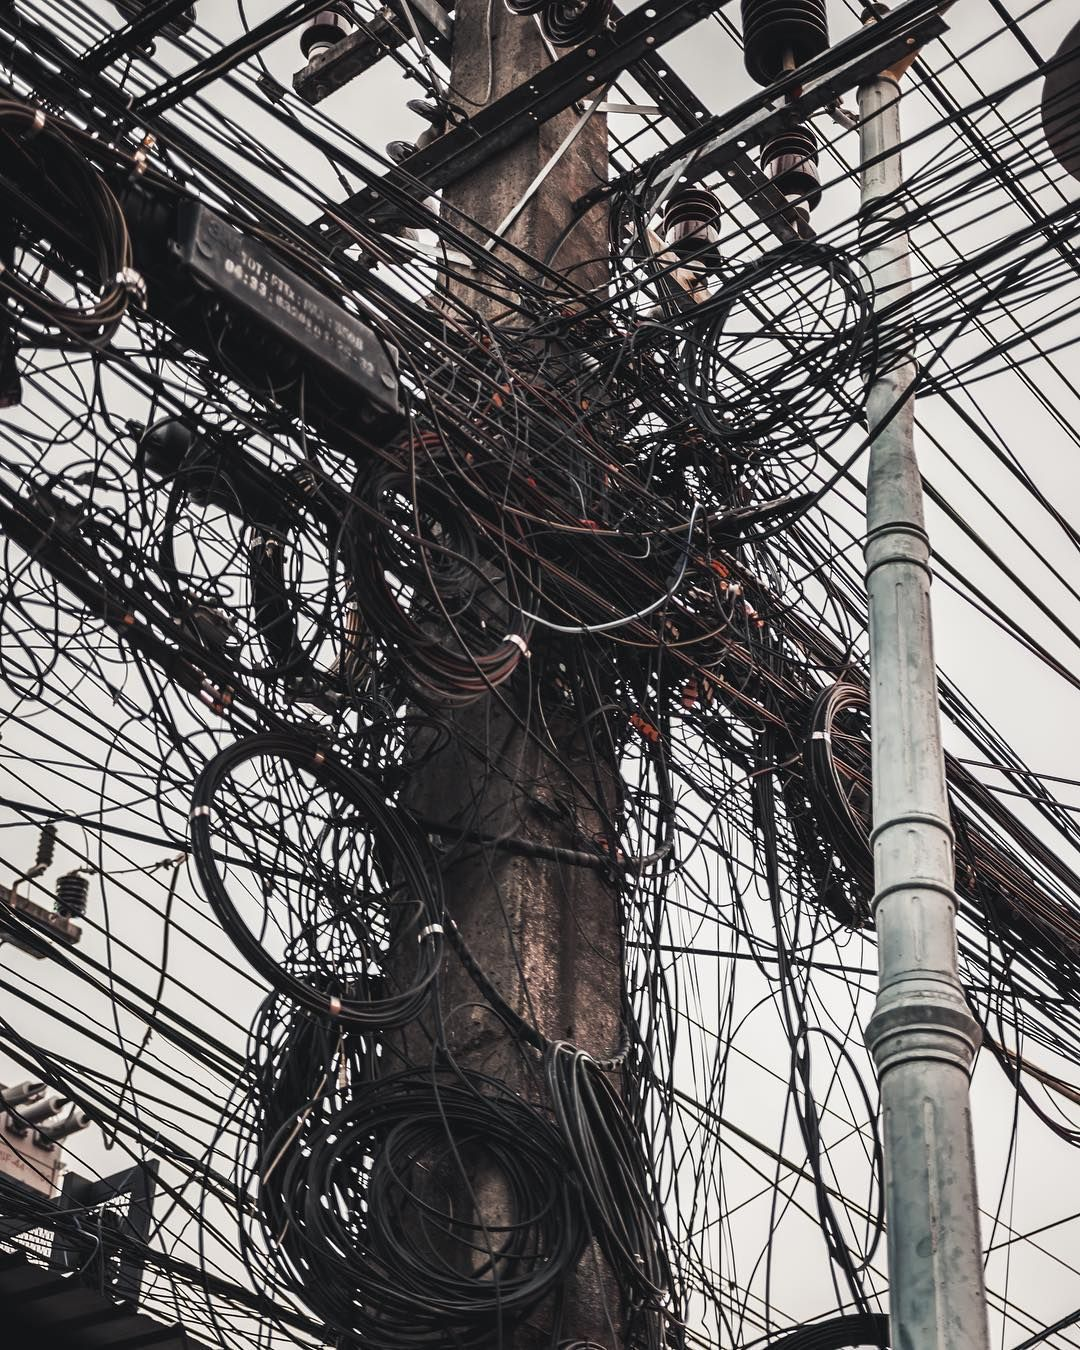 medium resolution of electrical spaghetti messy electrical wiring at phuket patongbeach banglaroad electrical spaghetti thailandvisit travelawesome goexplore